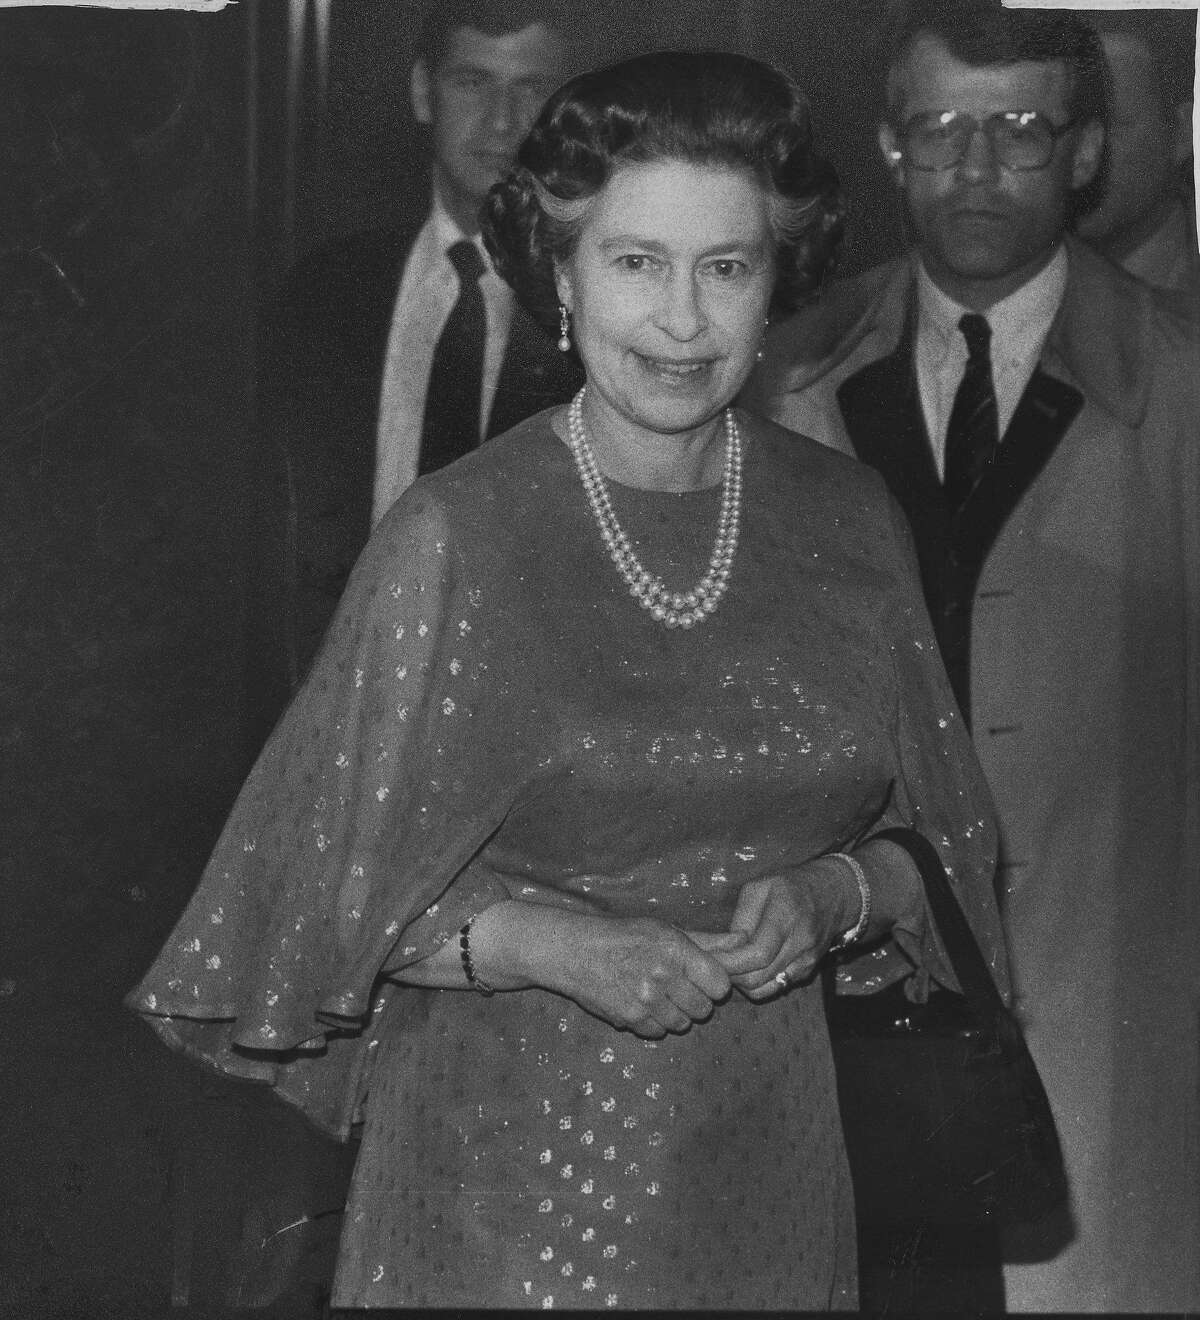 Queen Elizabeth II of Great Britain visits San Francisco. She is seen here in the St Francis Hotel lobby, on their way to dinner, March 2, 1983 Photo ran 03/03/1983, p. 13